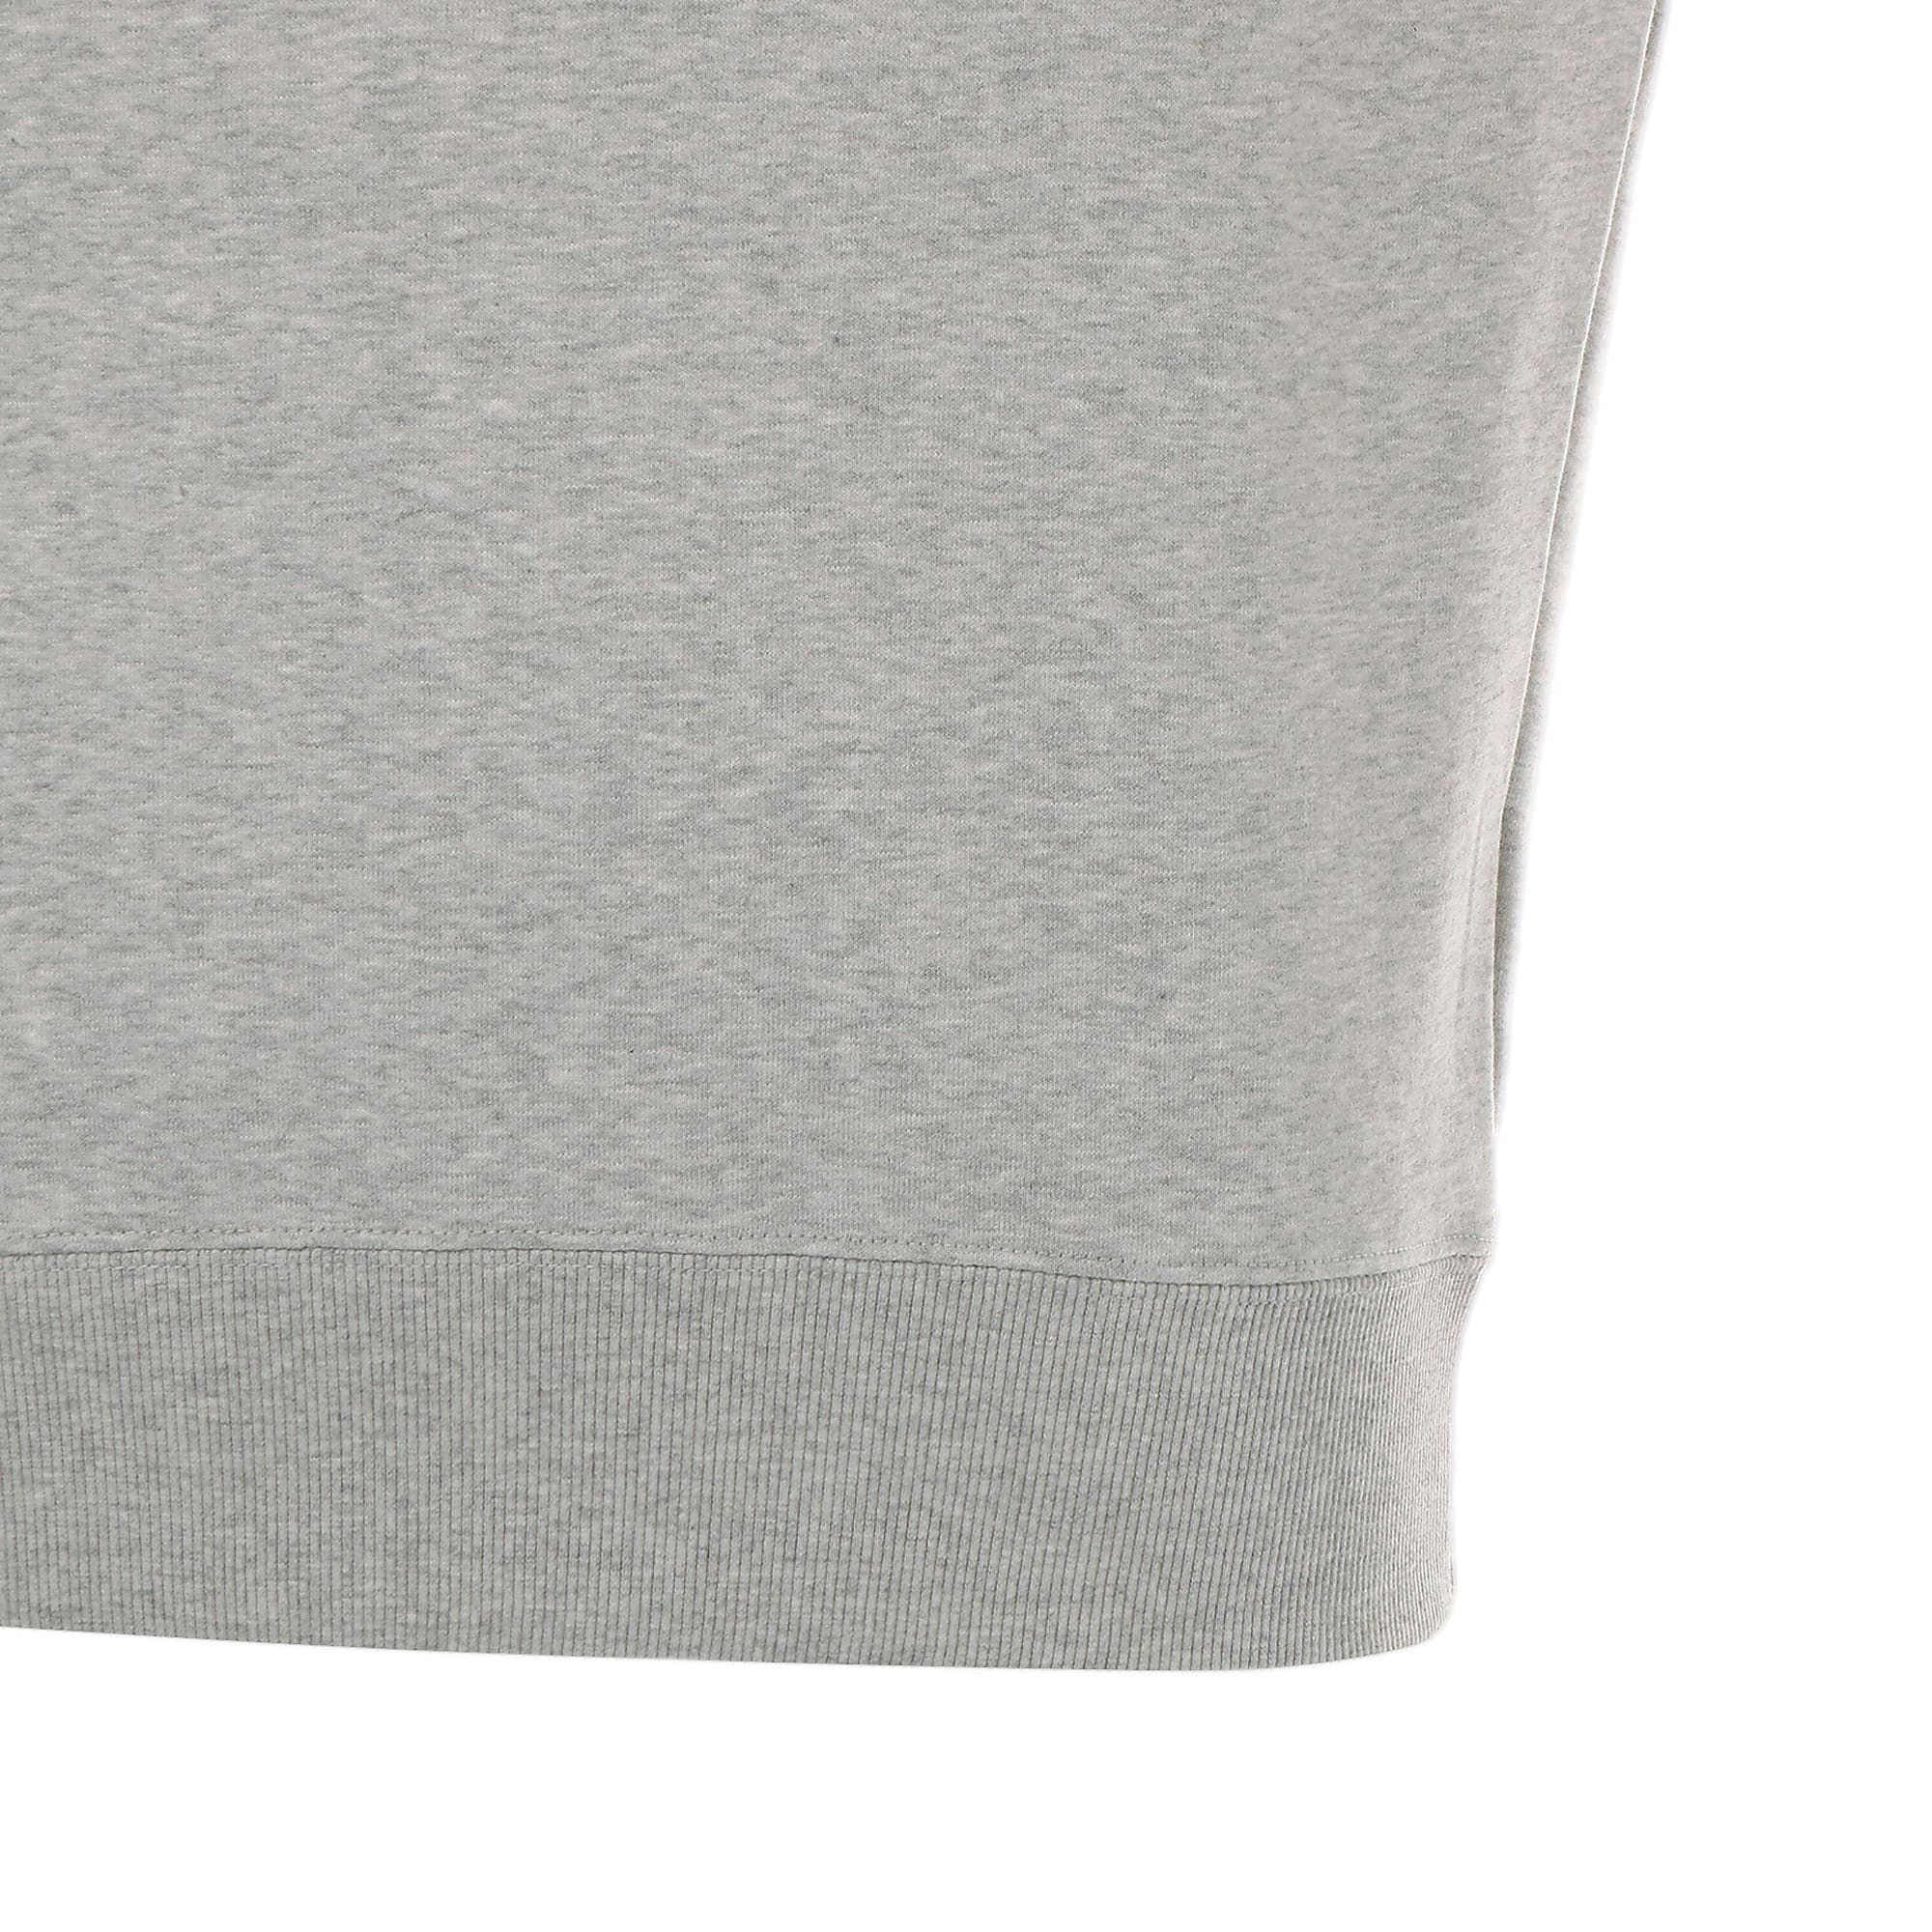 Thumbnail 5 of FIERCE CAT クルースウェット, Light Gray Heather, medium-JPN